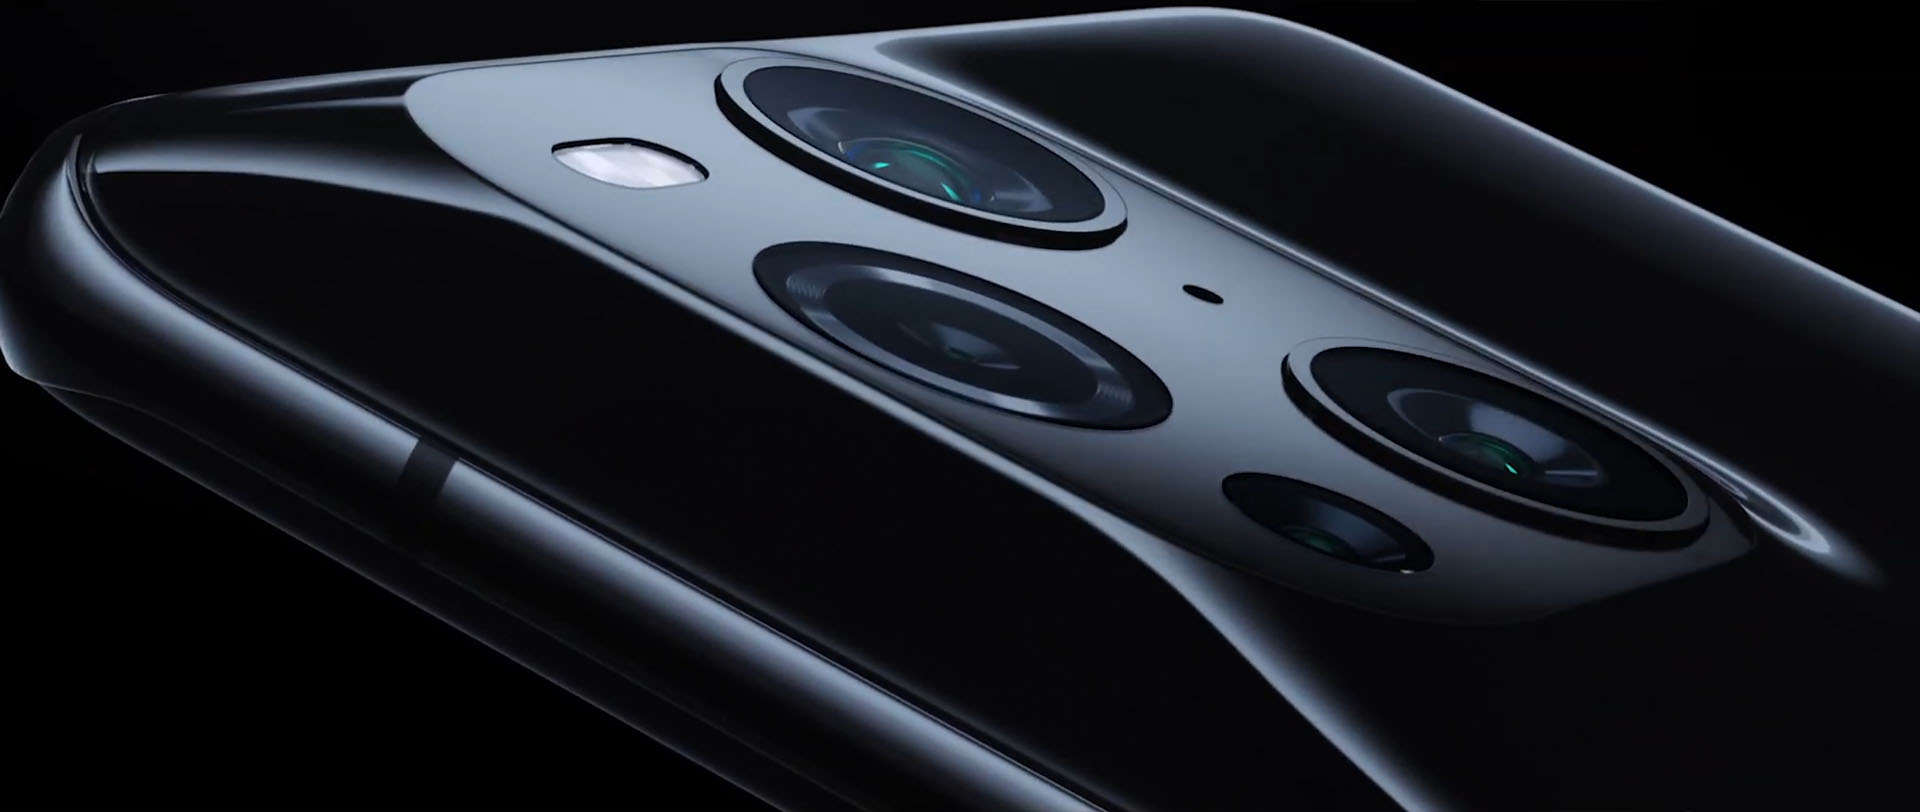 This is the Oppo Find X3 Pro